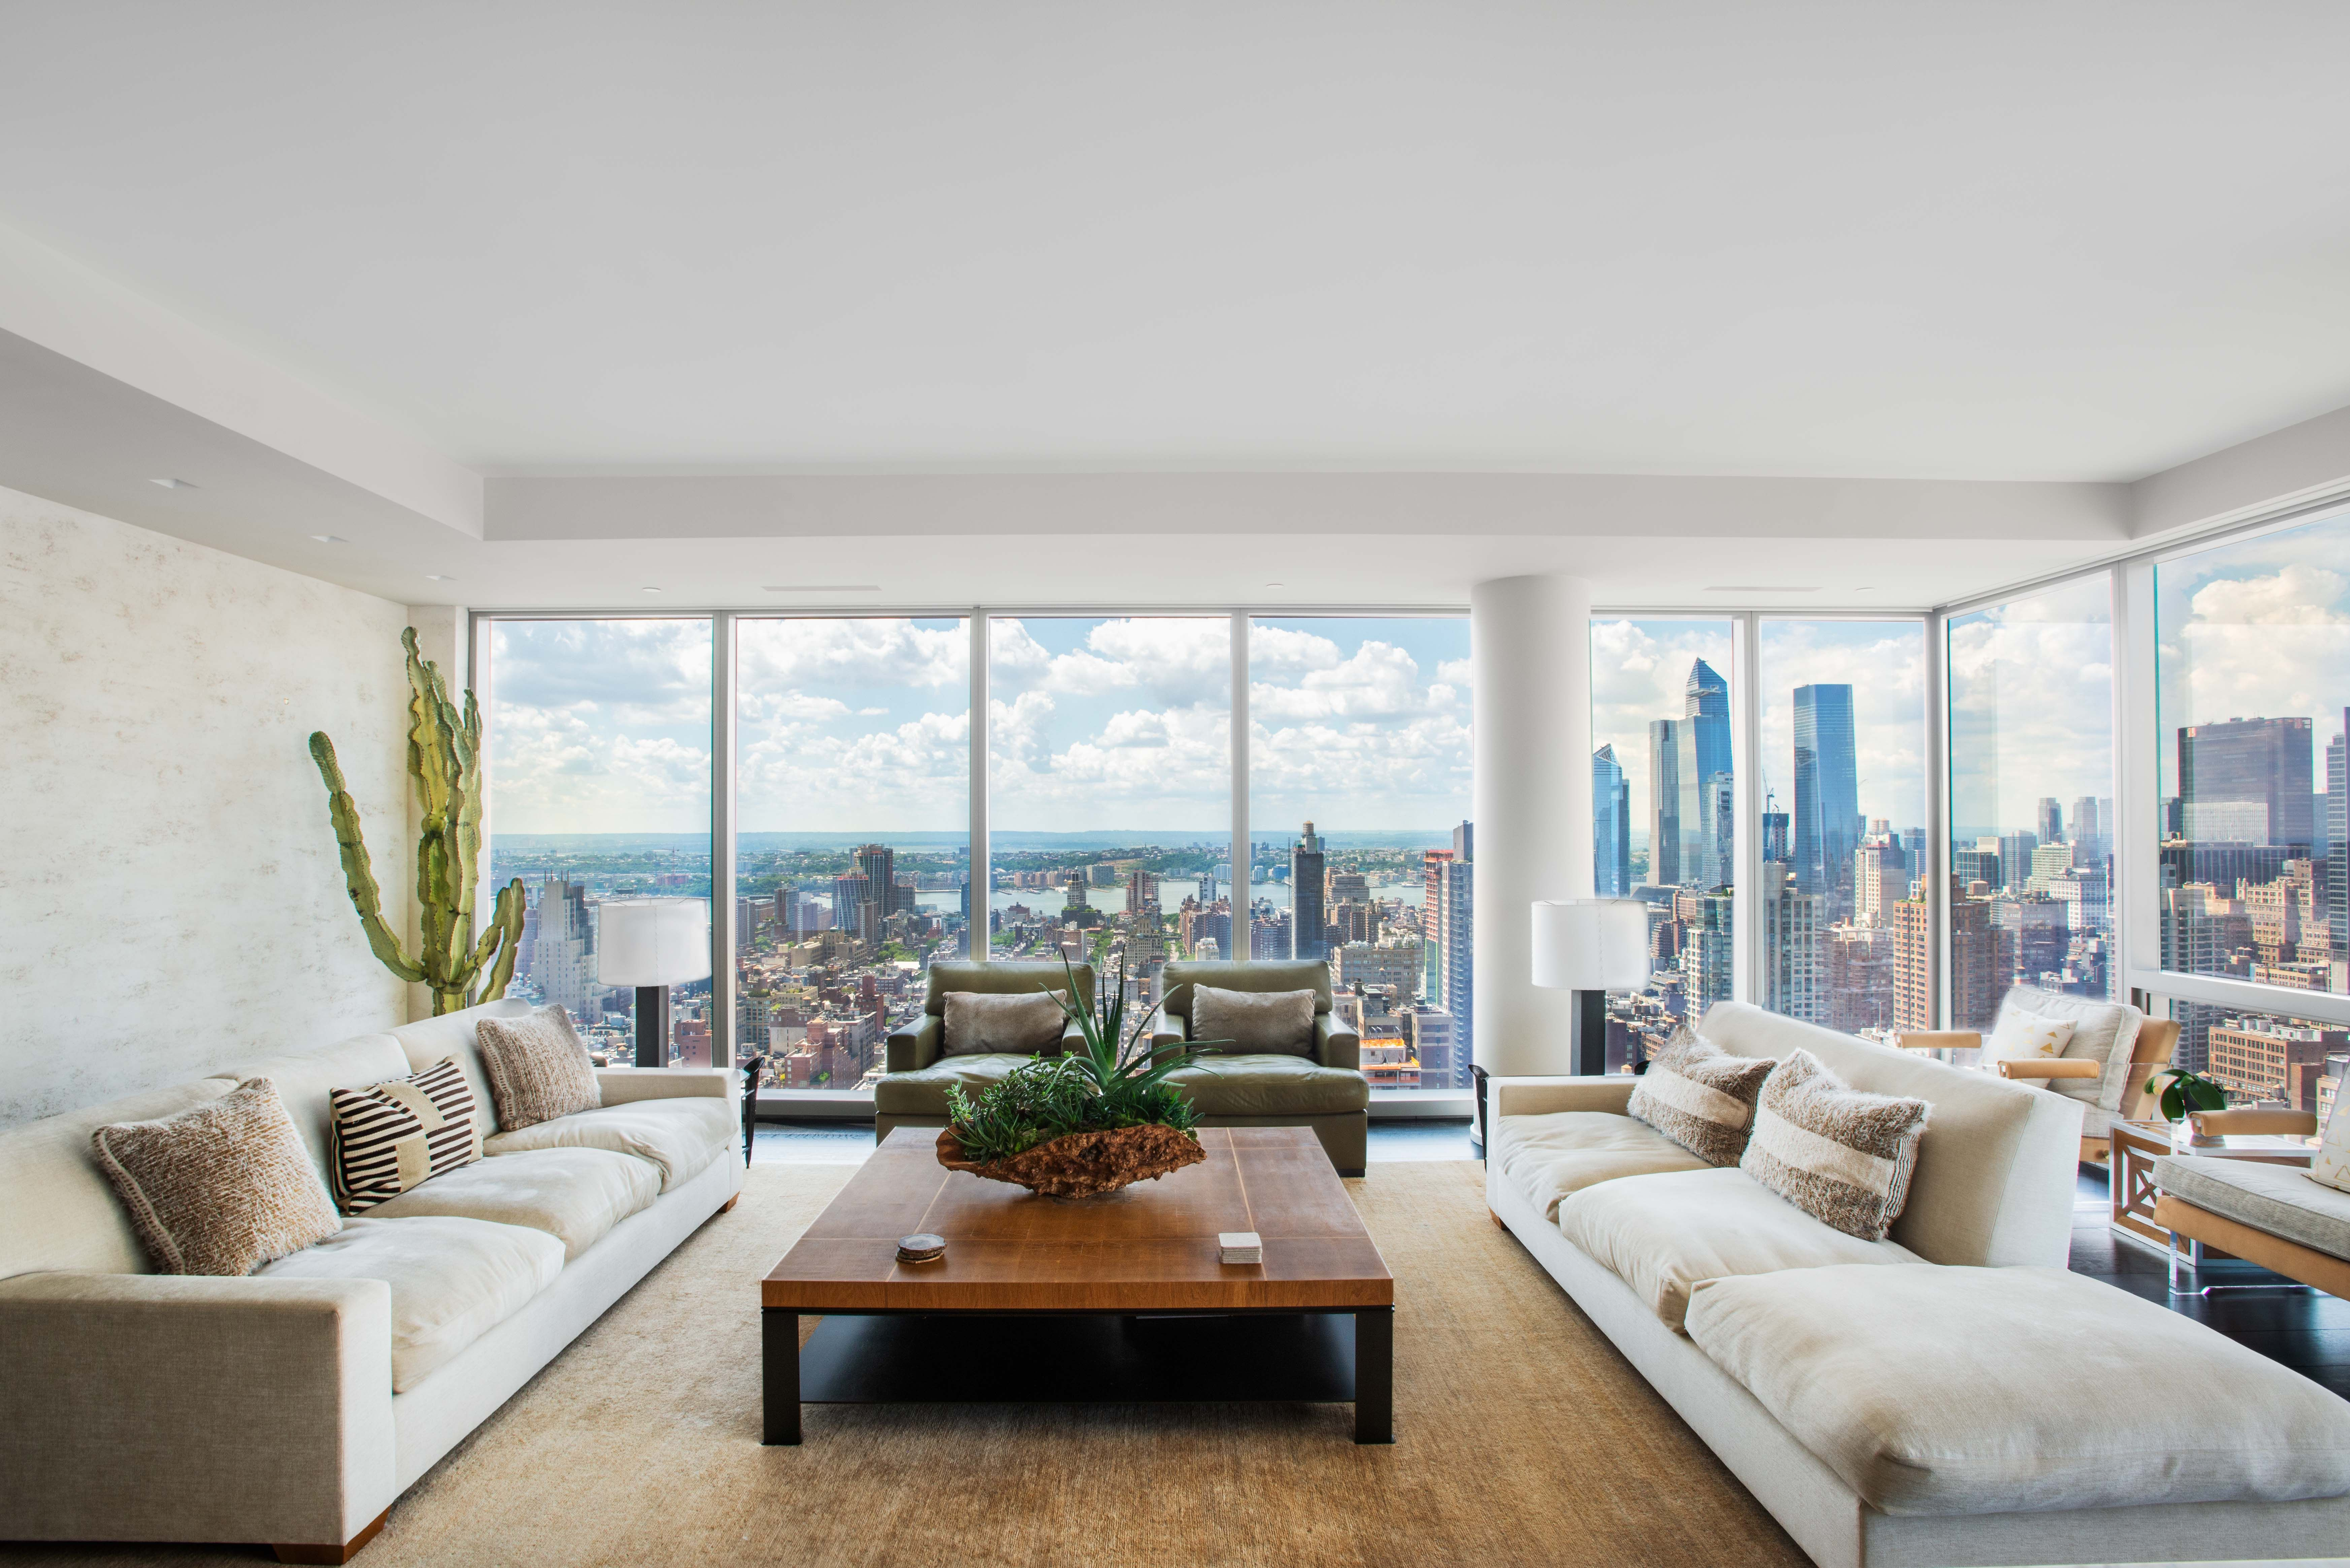 Gisele Bundchen And Tom Brady S Former Nyc Apartment Is For Sale And The Views Are Divine